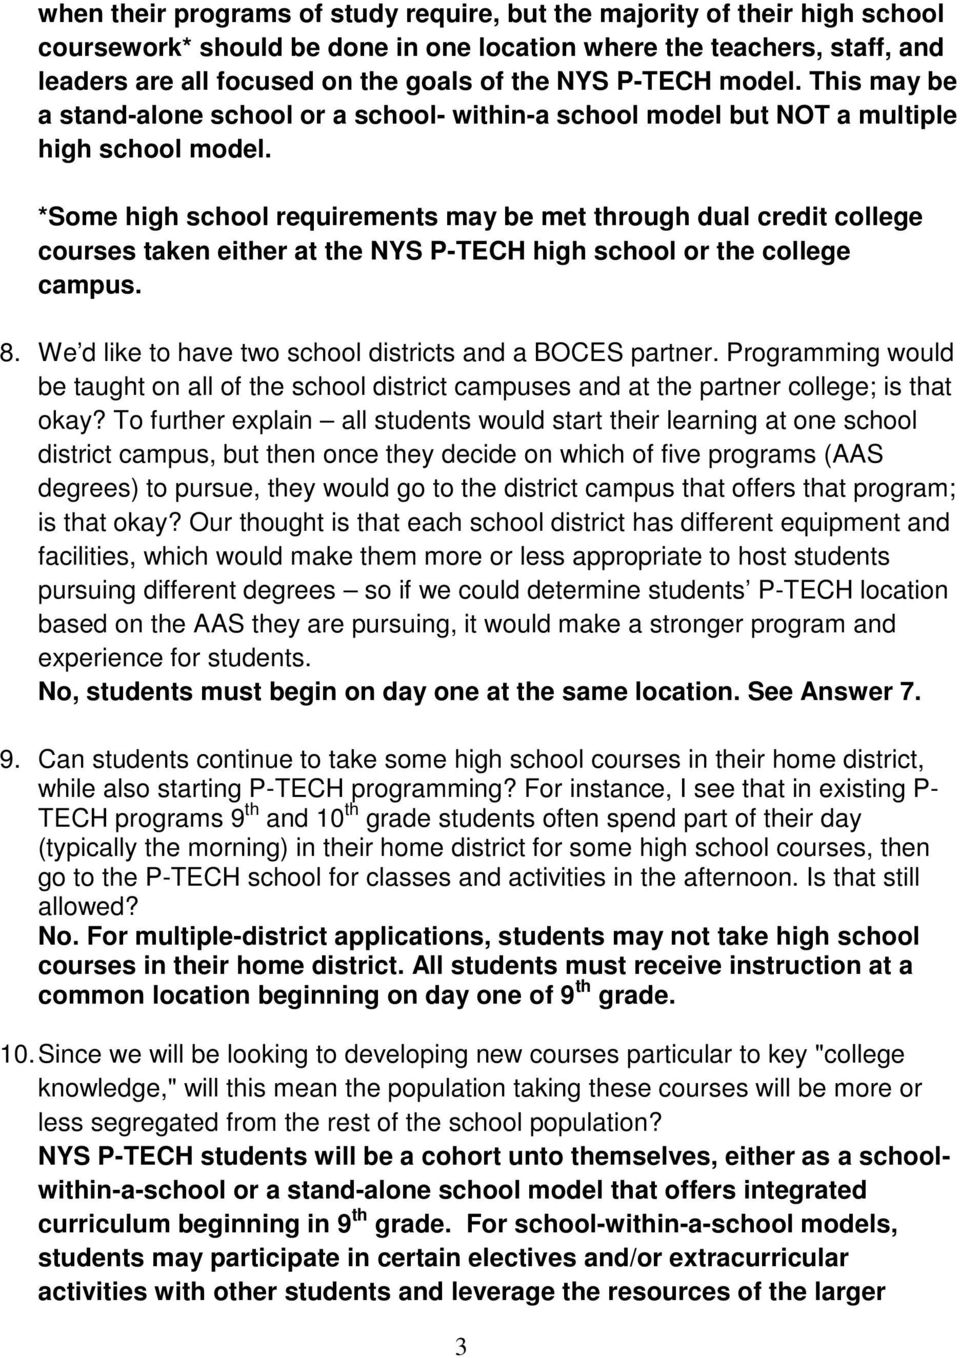 *Some high school requirements may be met through dual credit college courses taken either at the NYS P-TECH high school or the college campus. 8.